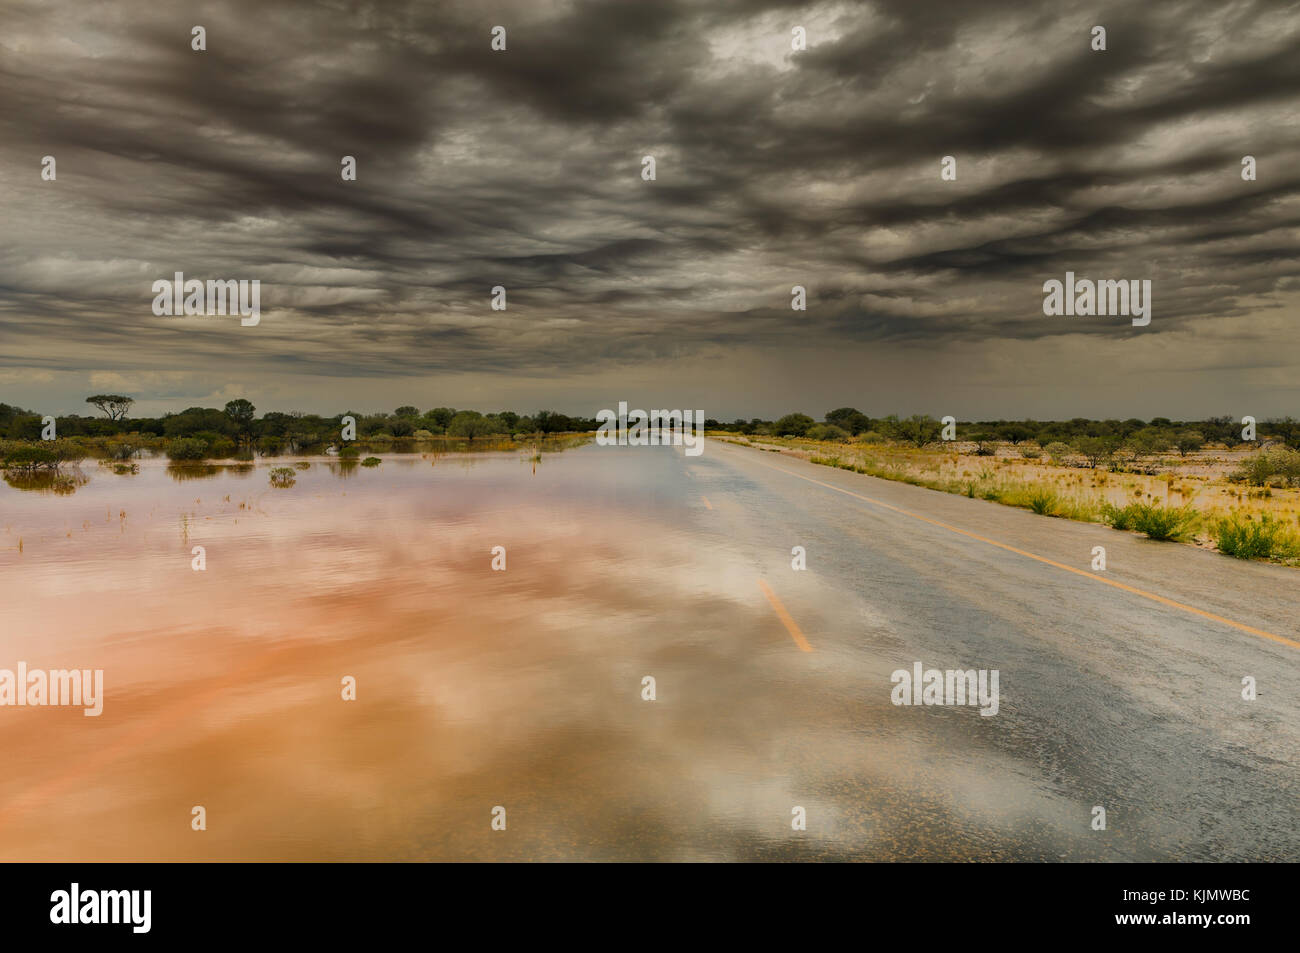 Water running over Great Northern Highway after heavy rain in Western Australia's outback. - Stock Image